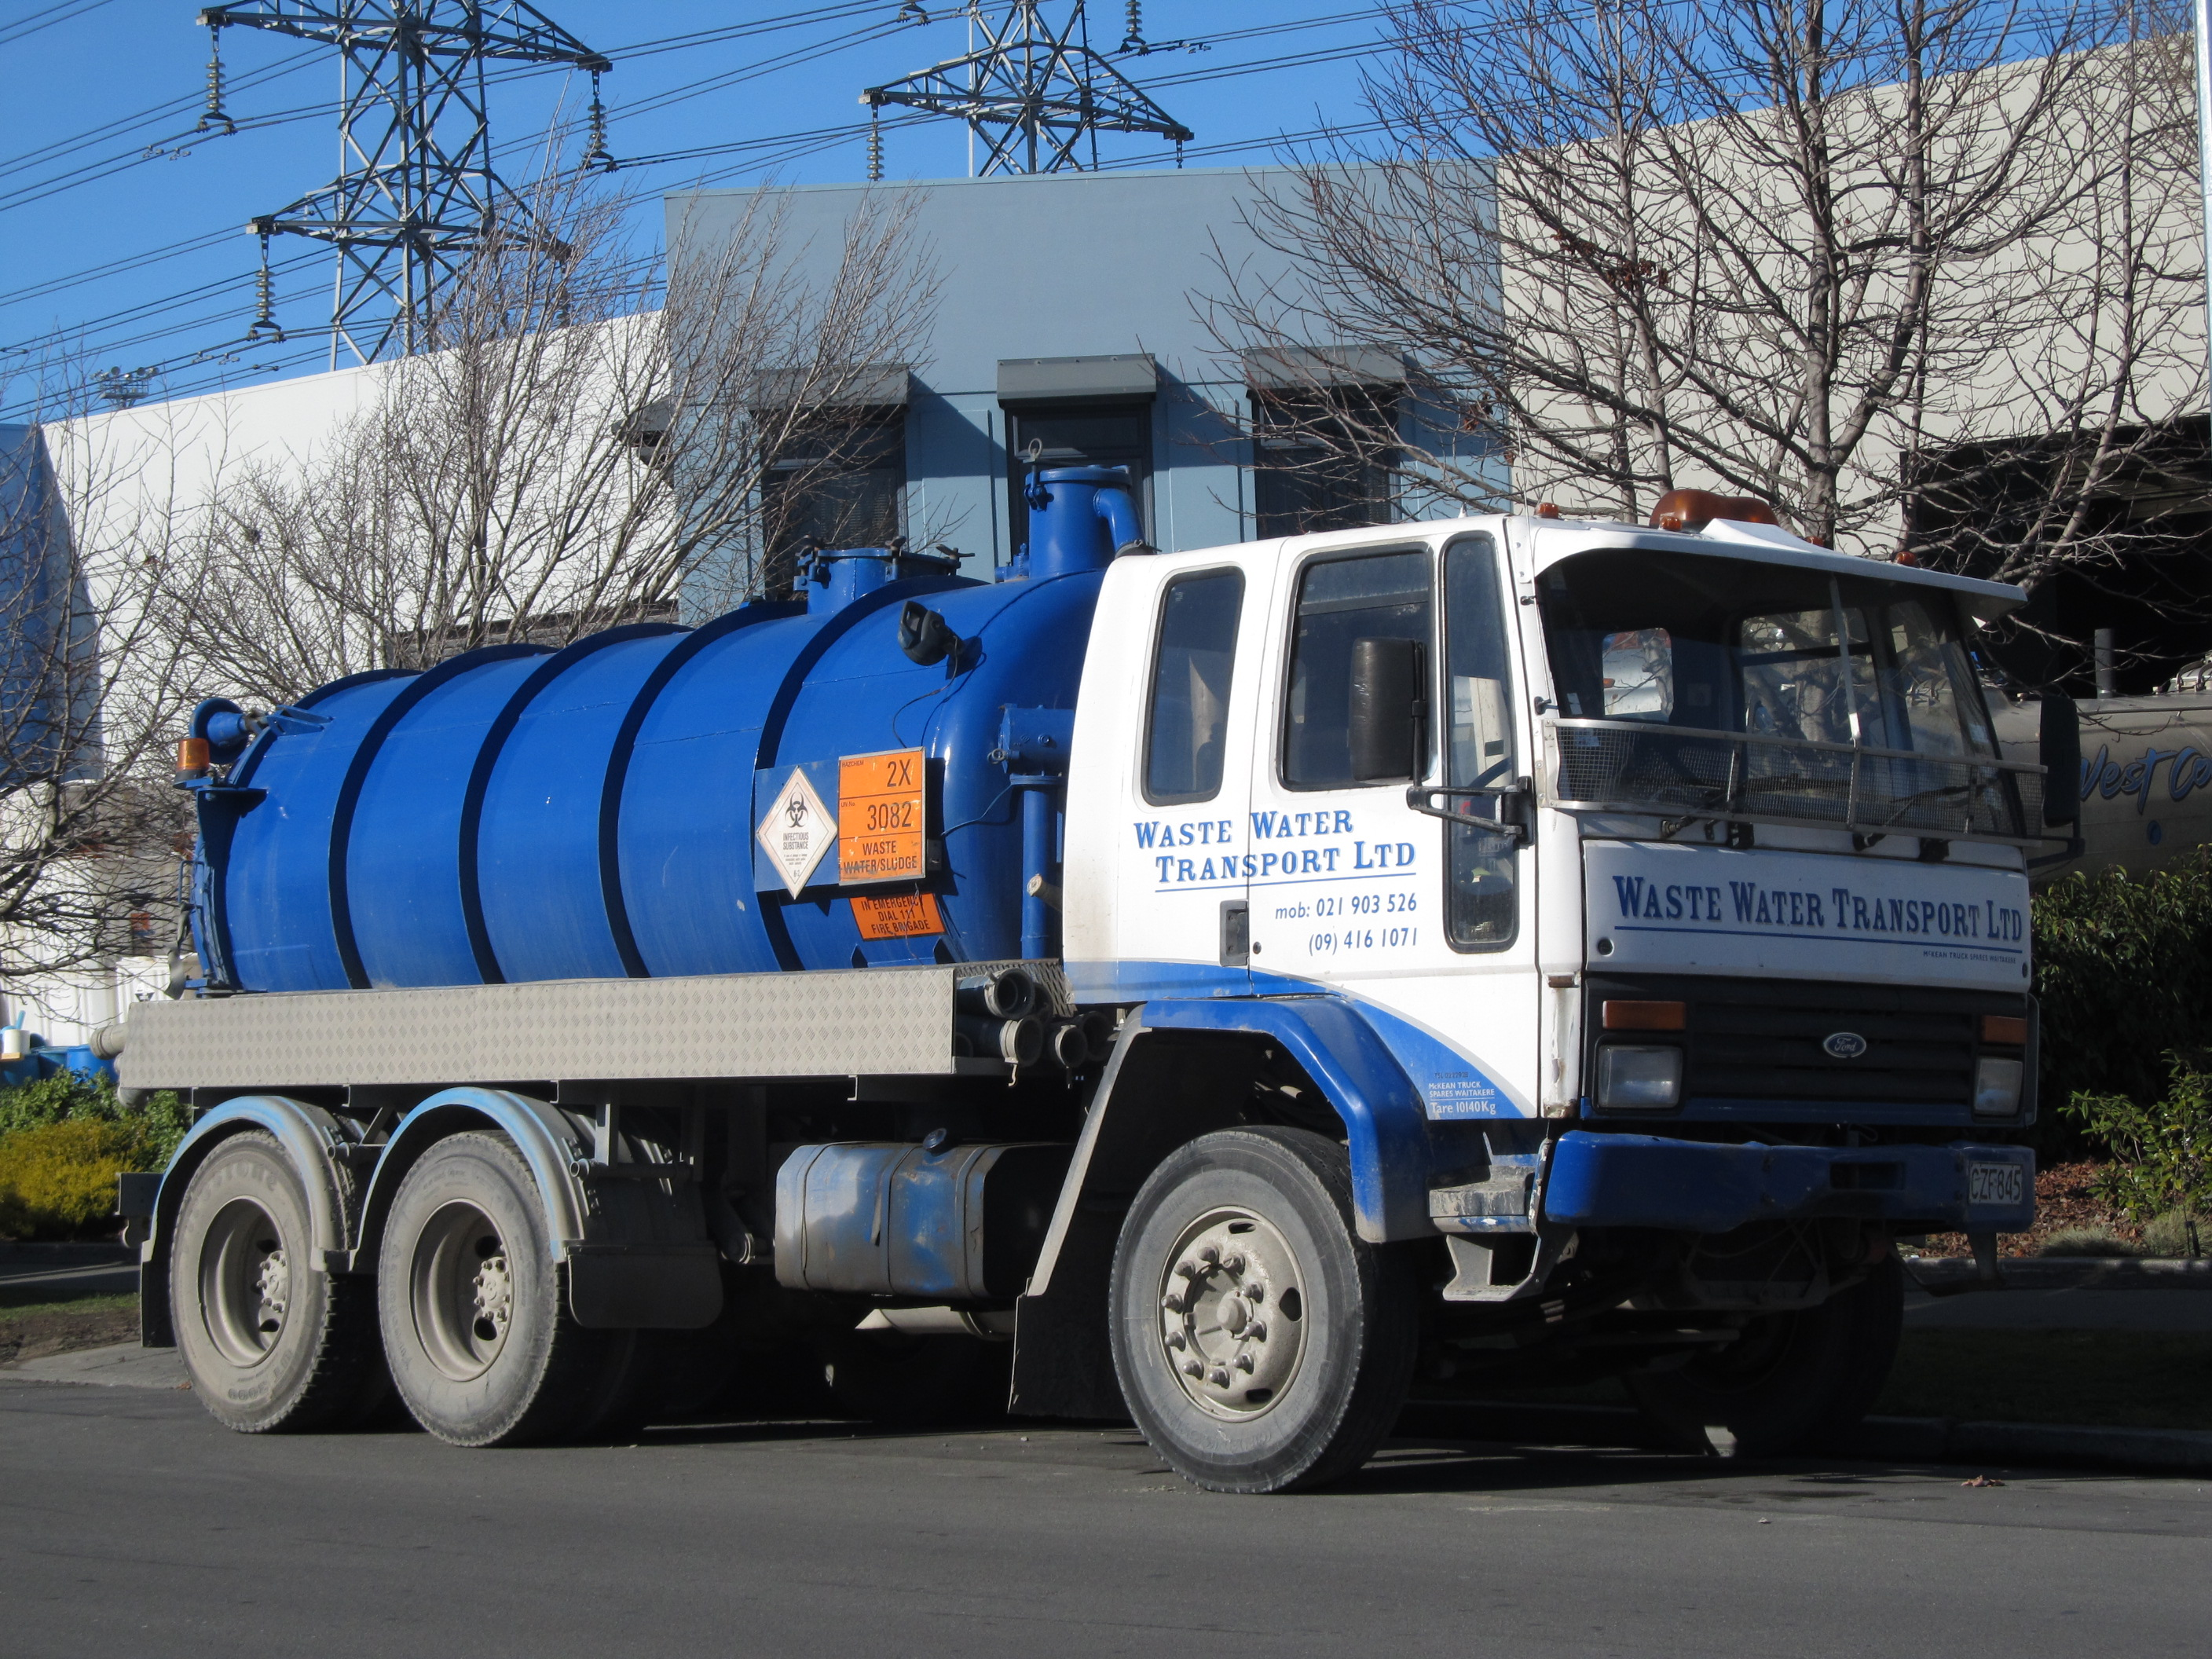 File:1986 Ford Cargo 'Waste Water Transport' Truck ...